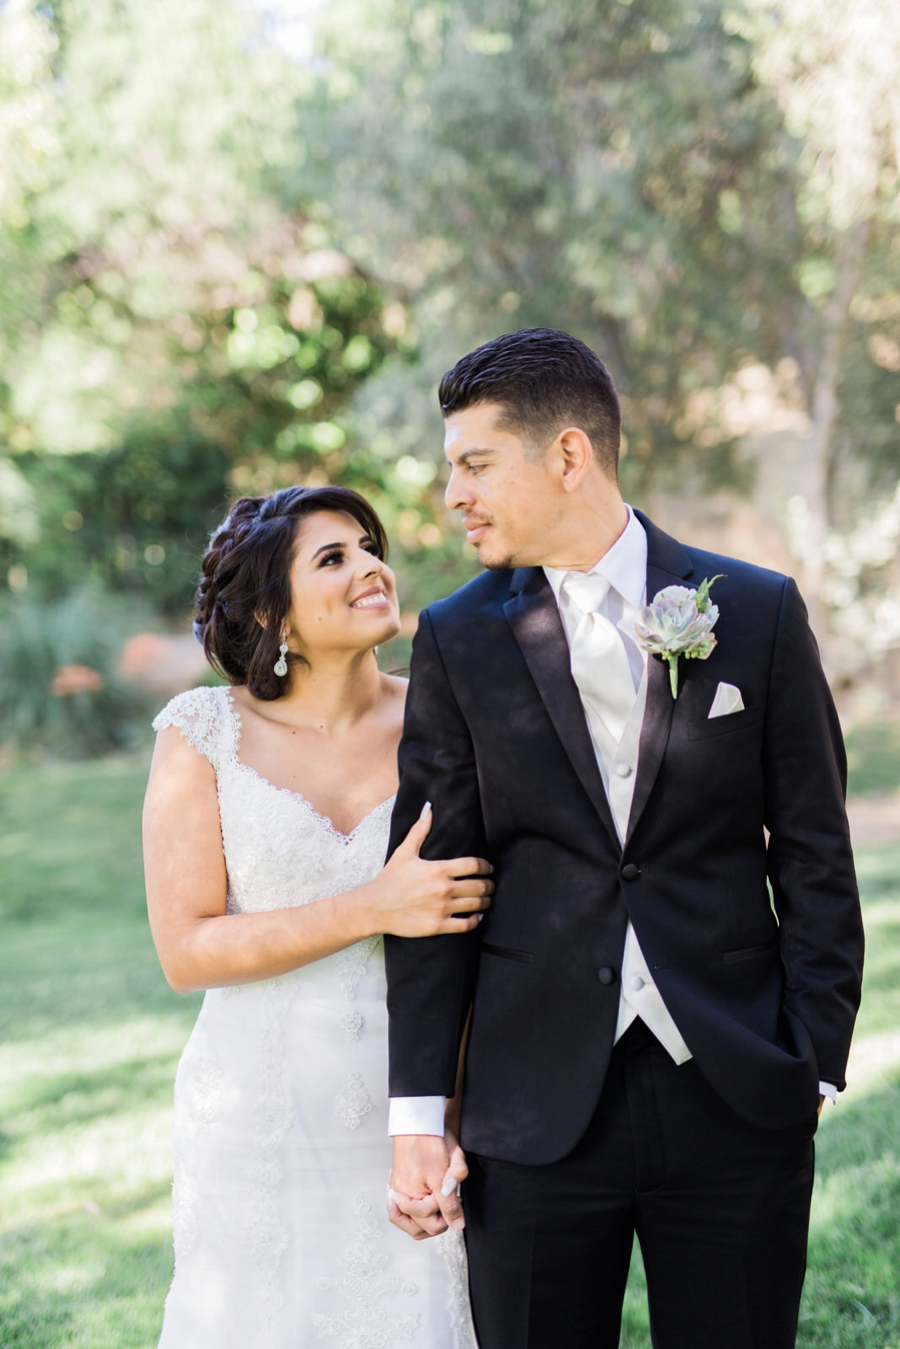 A Fun & Romantic Los Angeles Wedding via TheELD.com